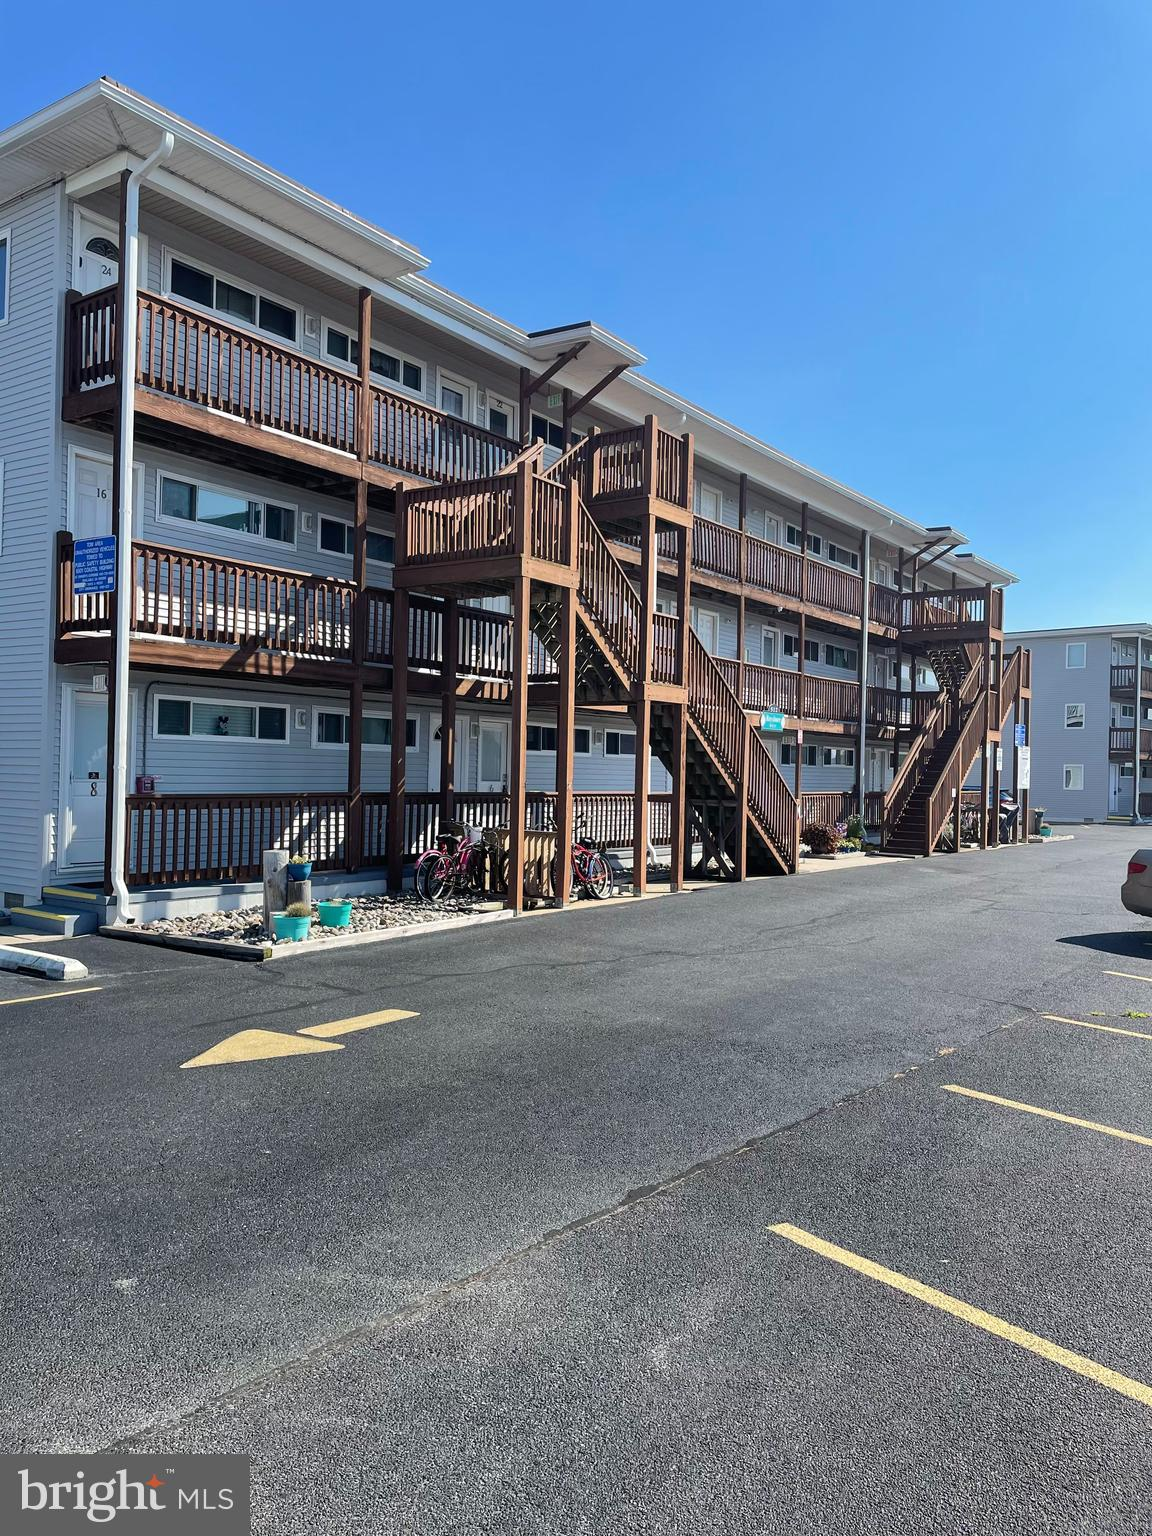 Easy living by the sea with this completely renovated 1 bedroom, 1 bath unit with DEEDED BOAT SLIP!!